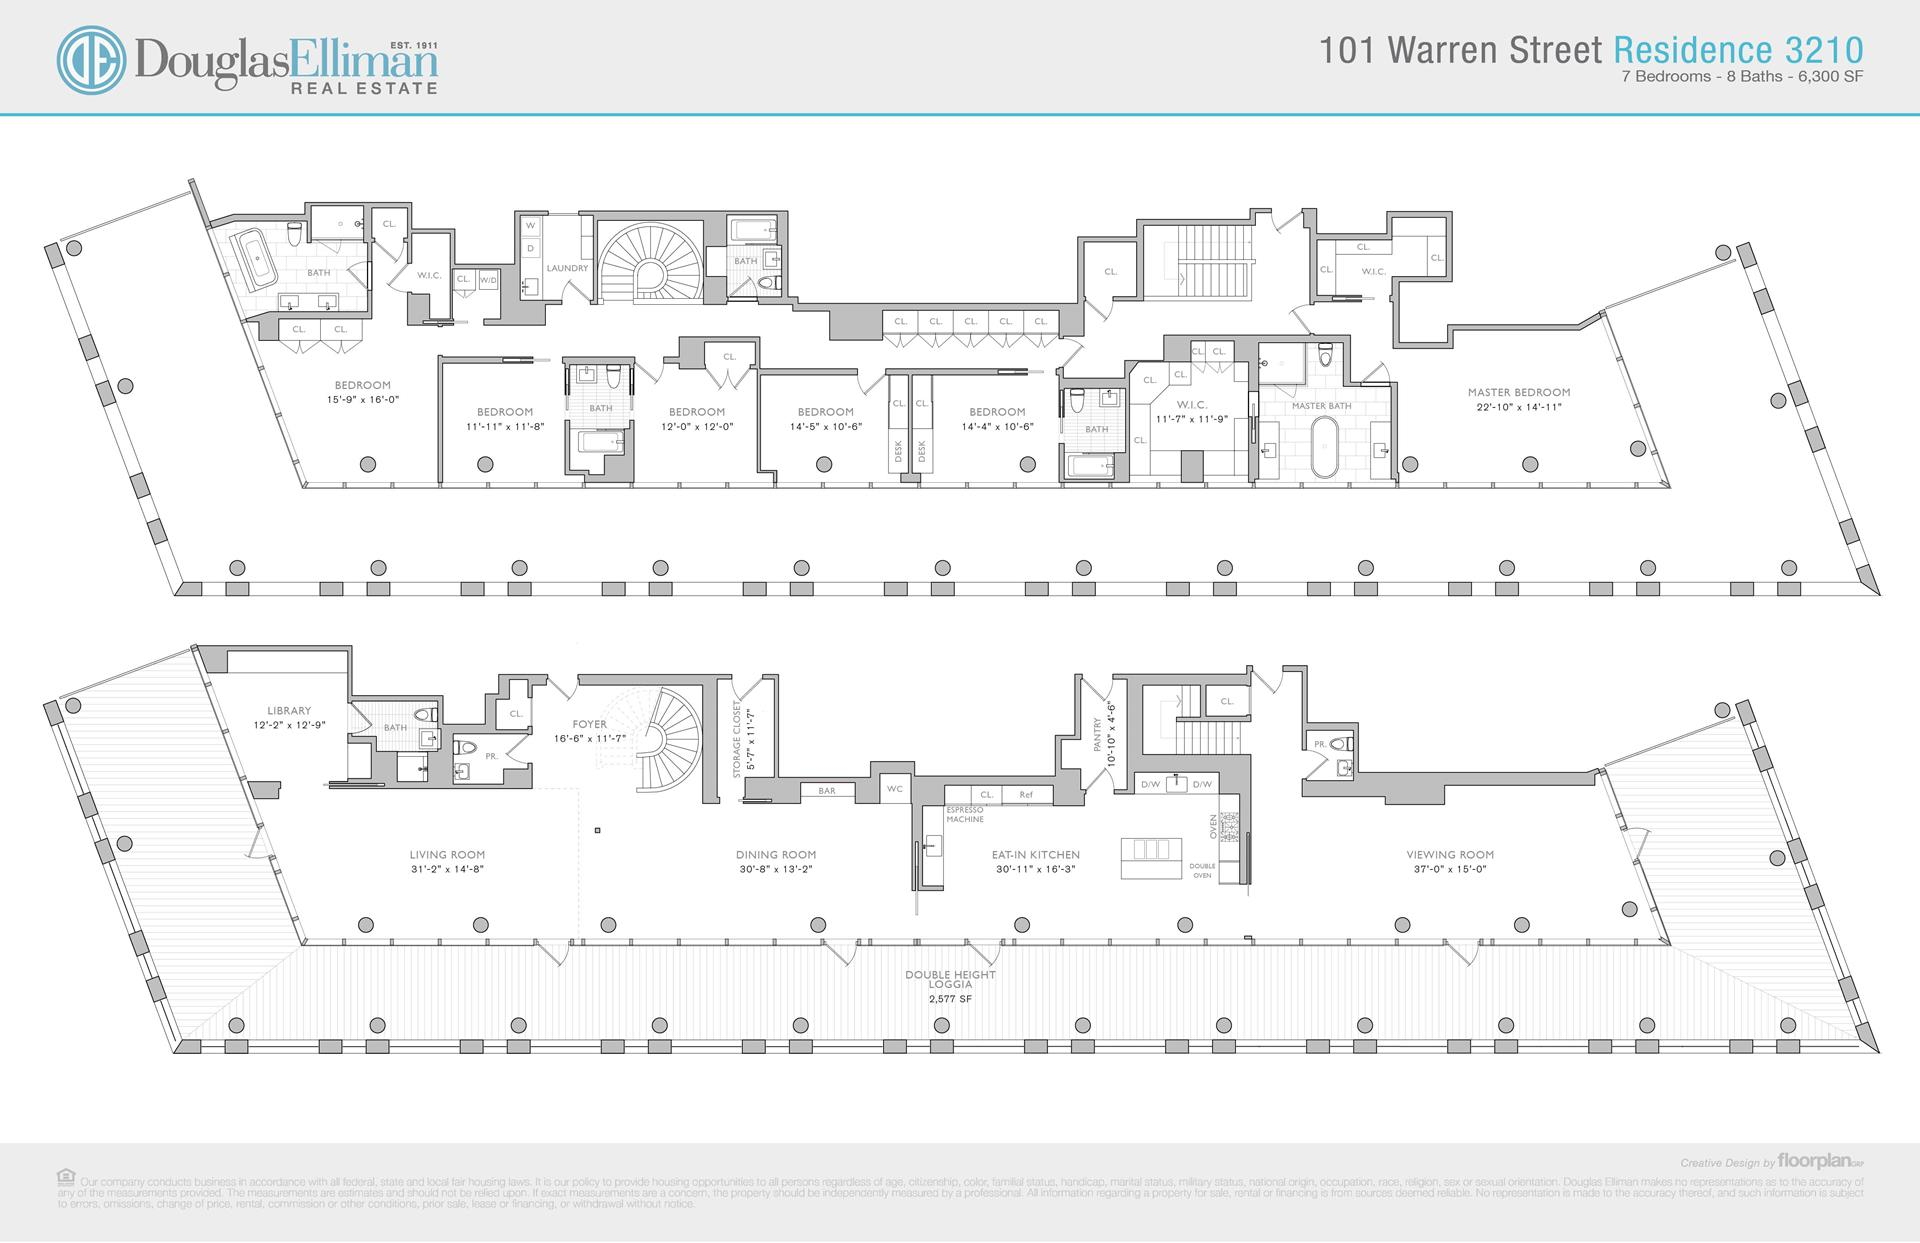 Floor plan of 101 Warren St, 3210 - TriBeCa, New York